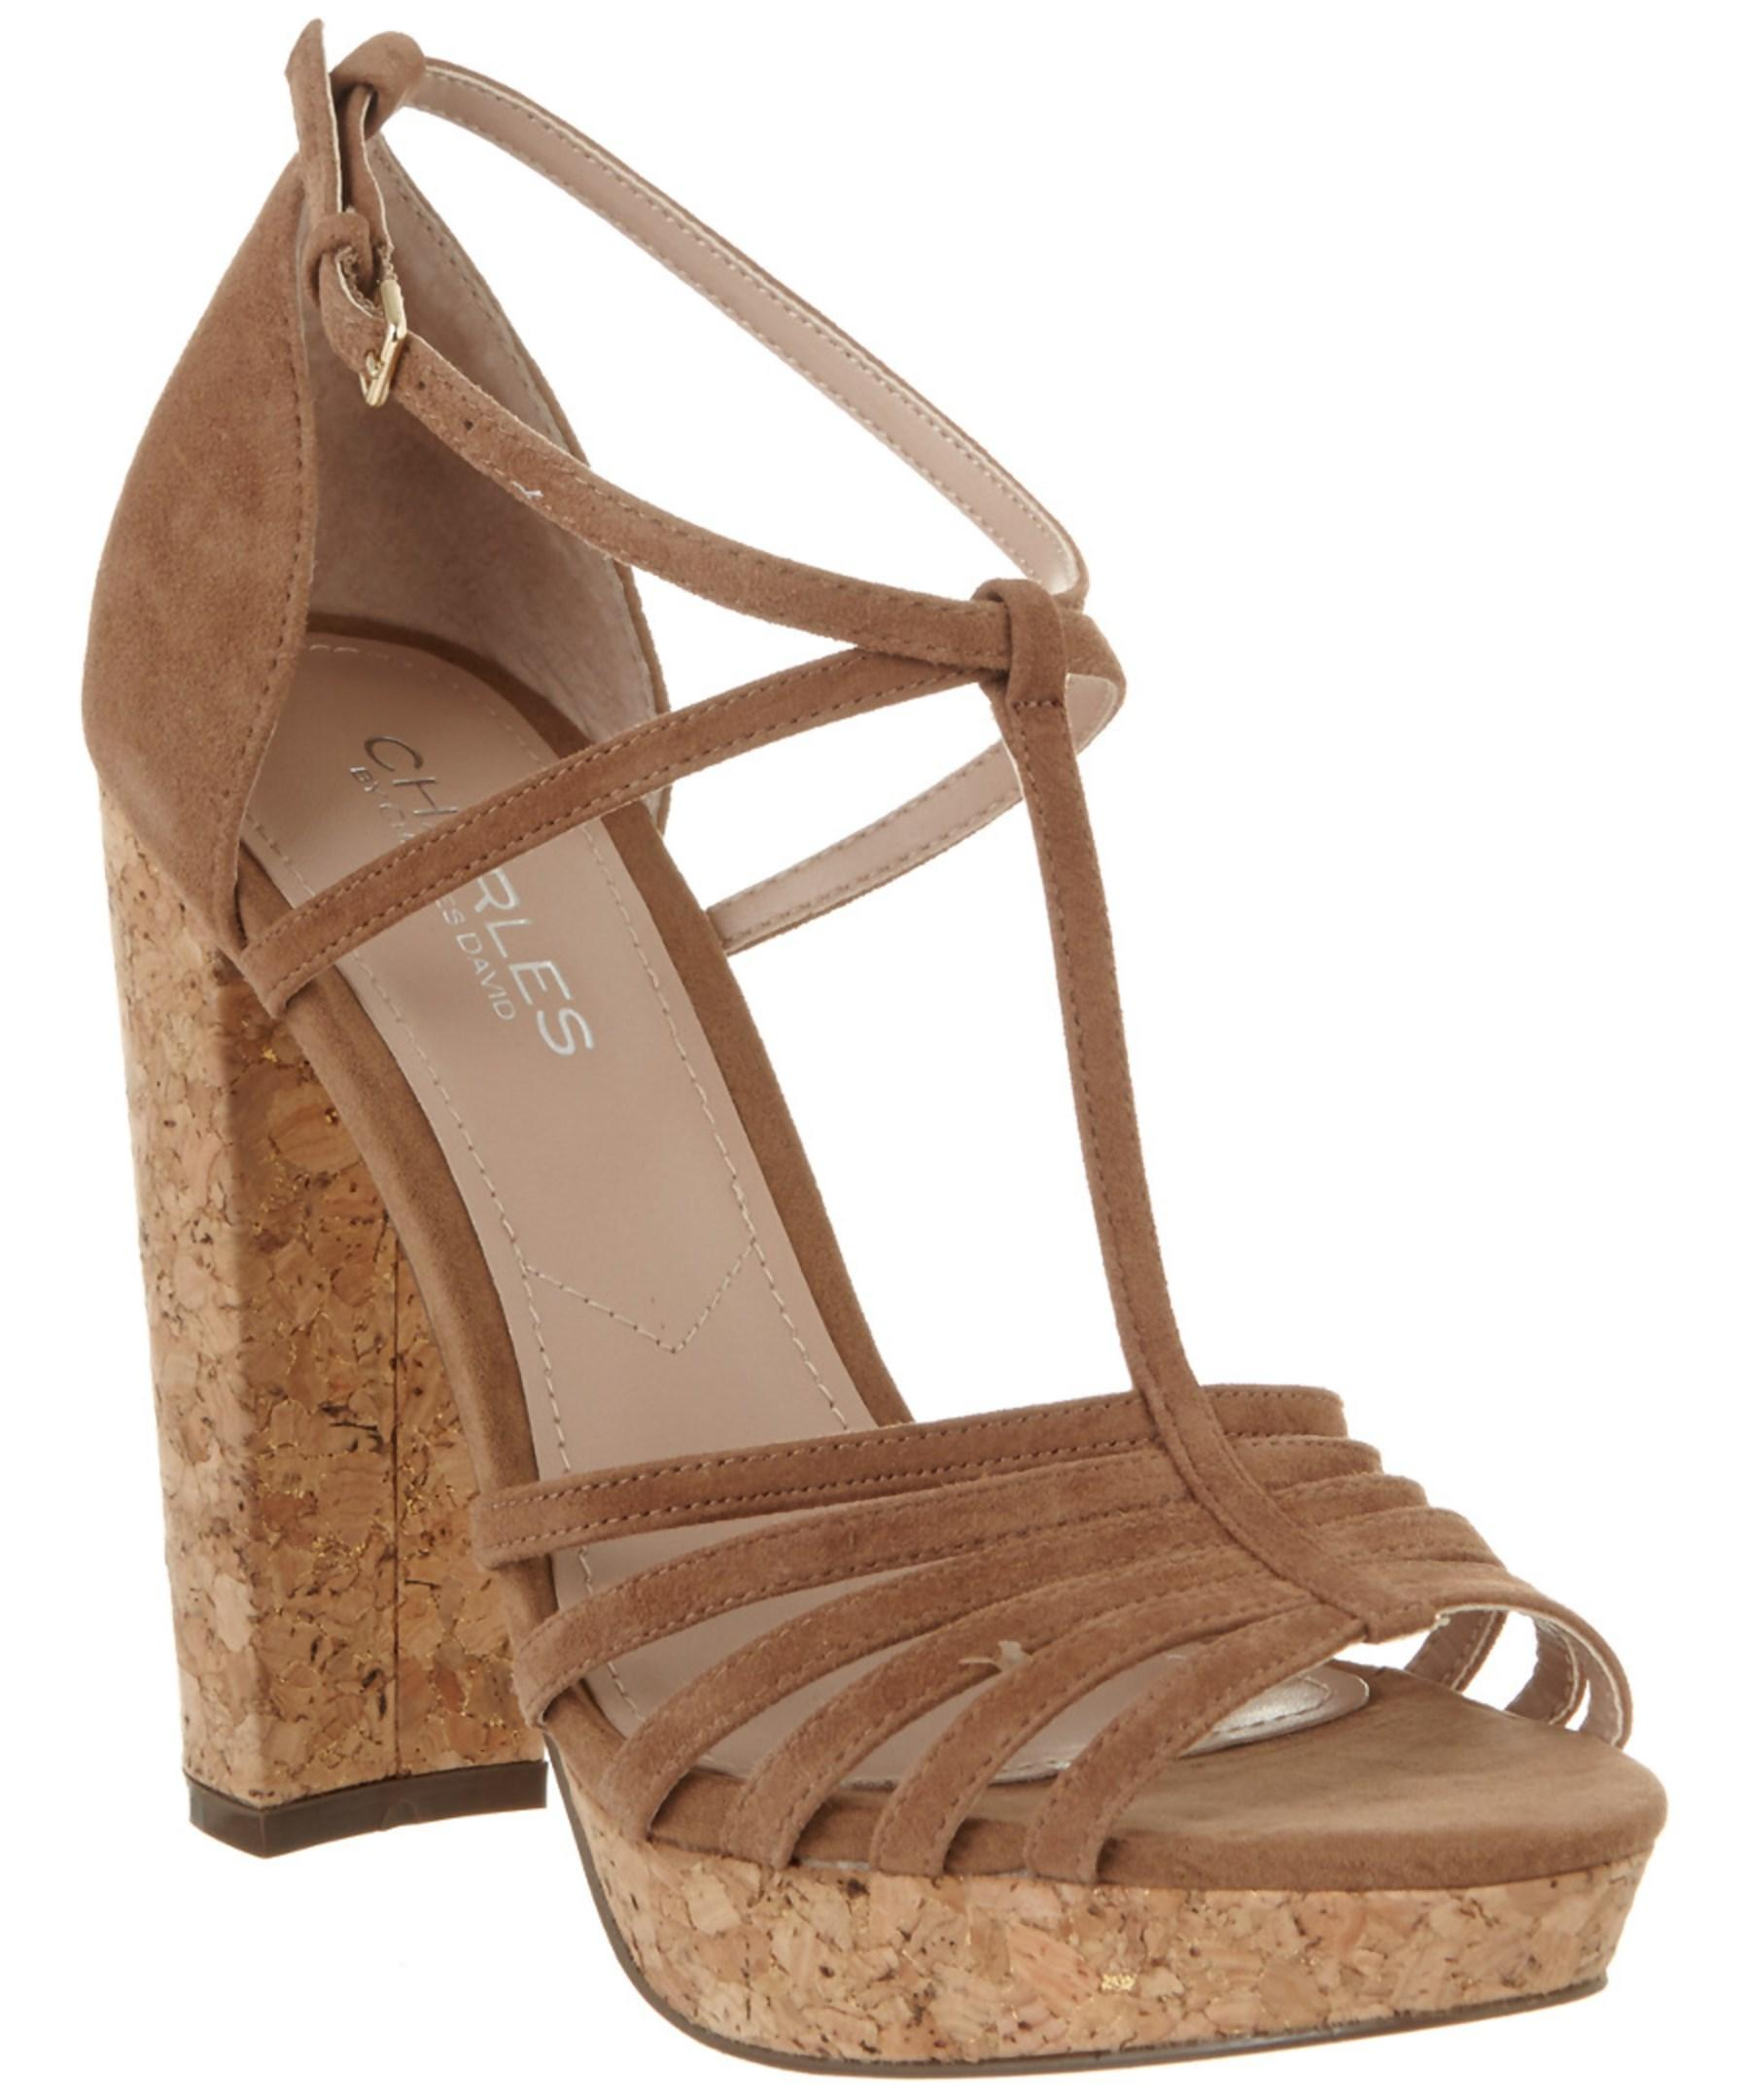 bd54f0043530 Lyst - Charles By Charles David Faint Suede Sandal in Natural